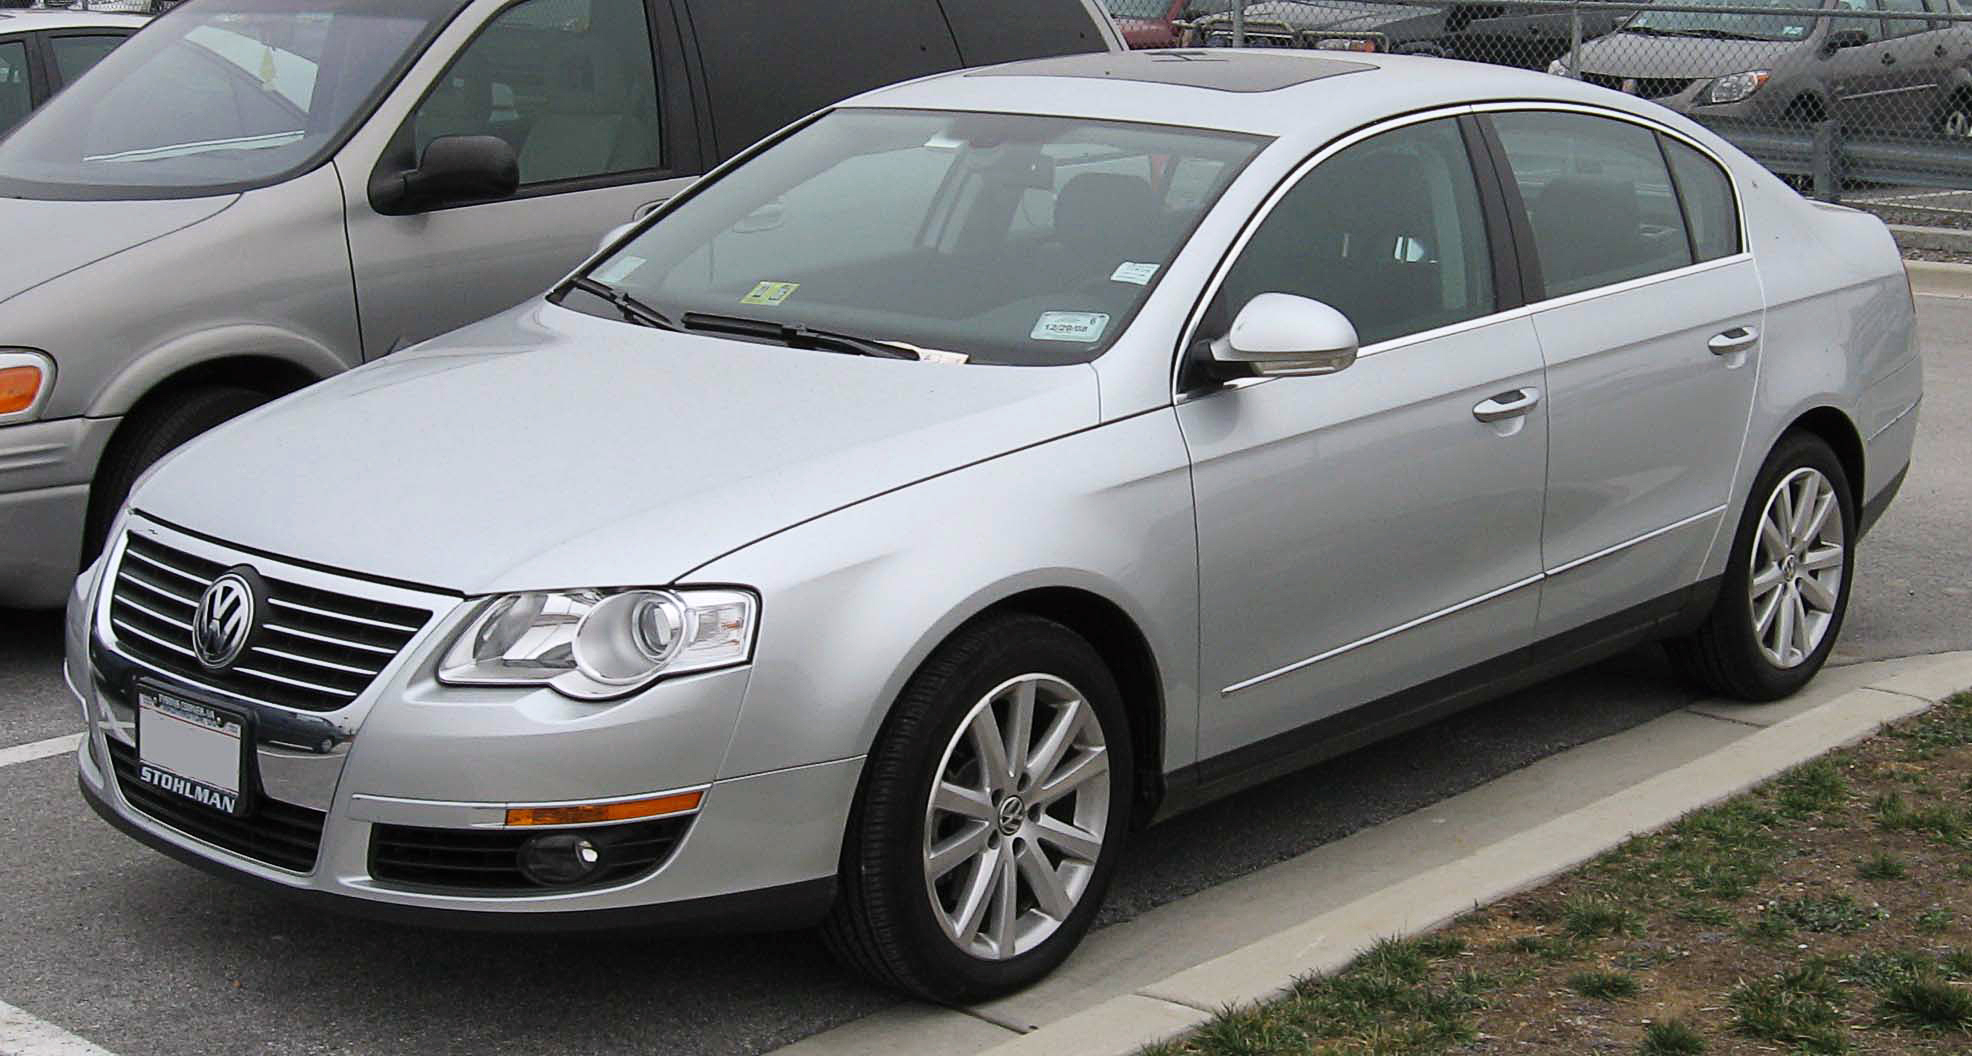 2009 volkswagen passat photos informations articles. Black Bedroom Furniture Sets. Home Design Ideas